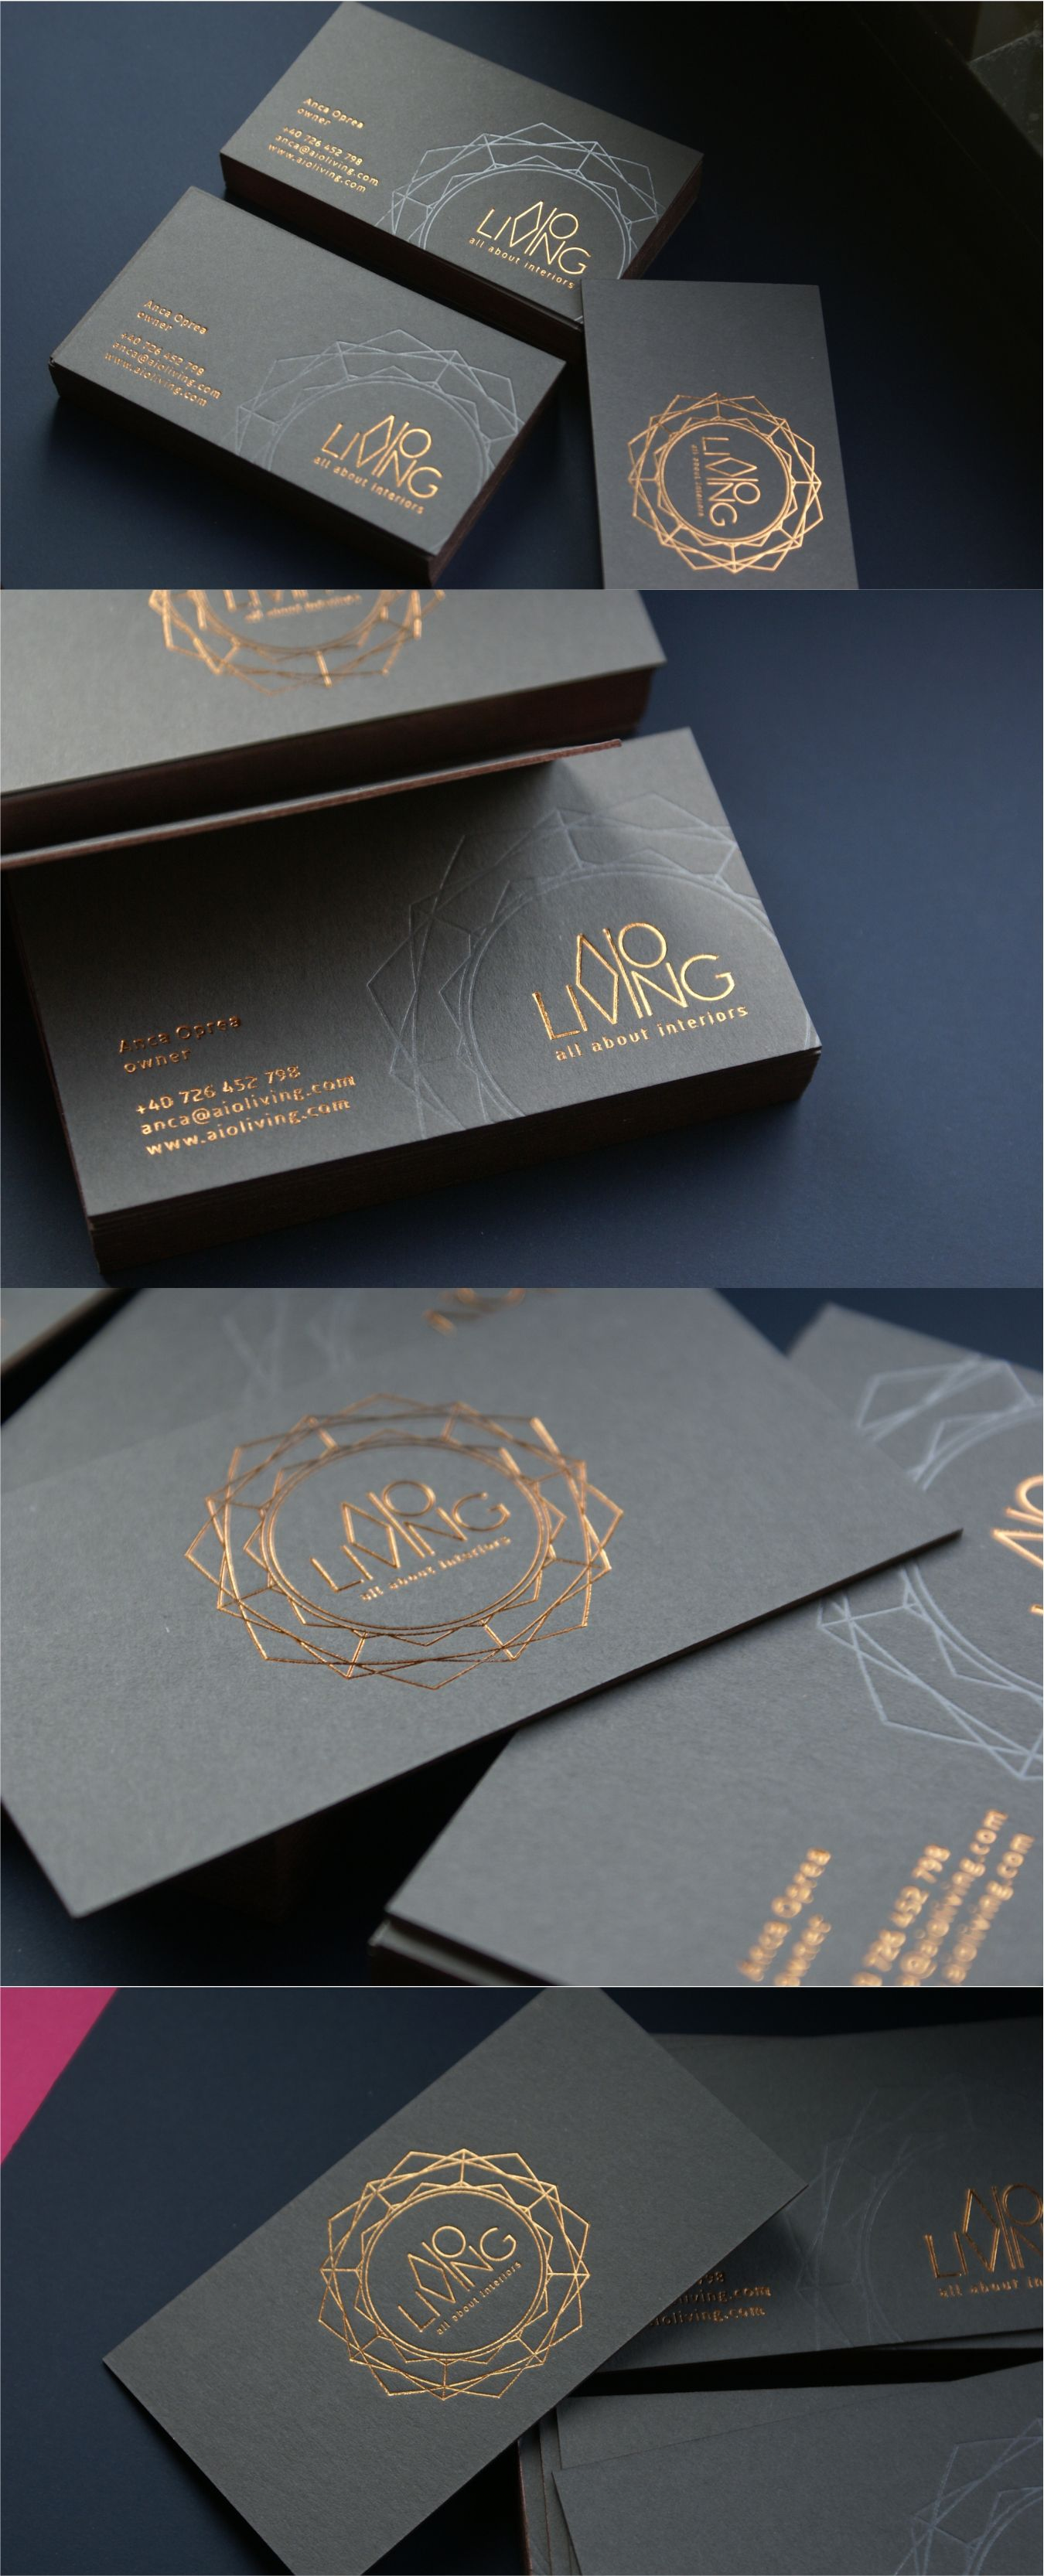 Luxury Business Cards With Copper Foil And Deboss Elegant Business Cards Design Visiting Card Design Luxury Business Cards